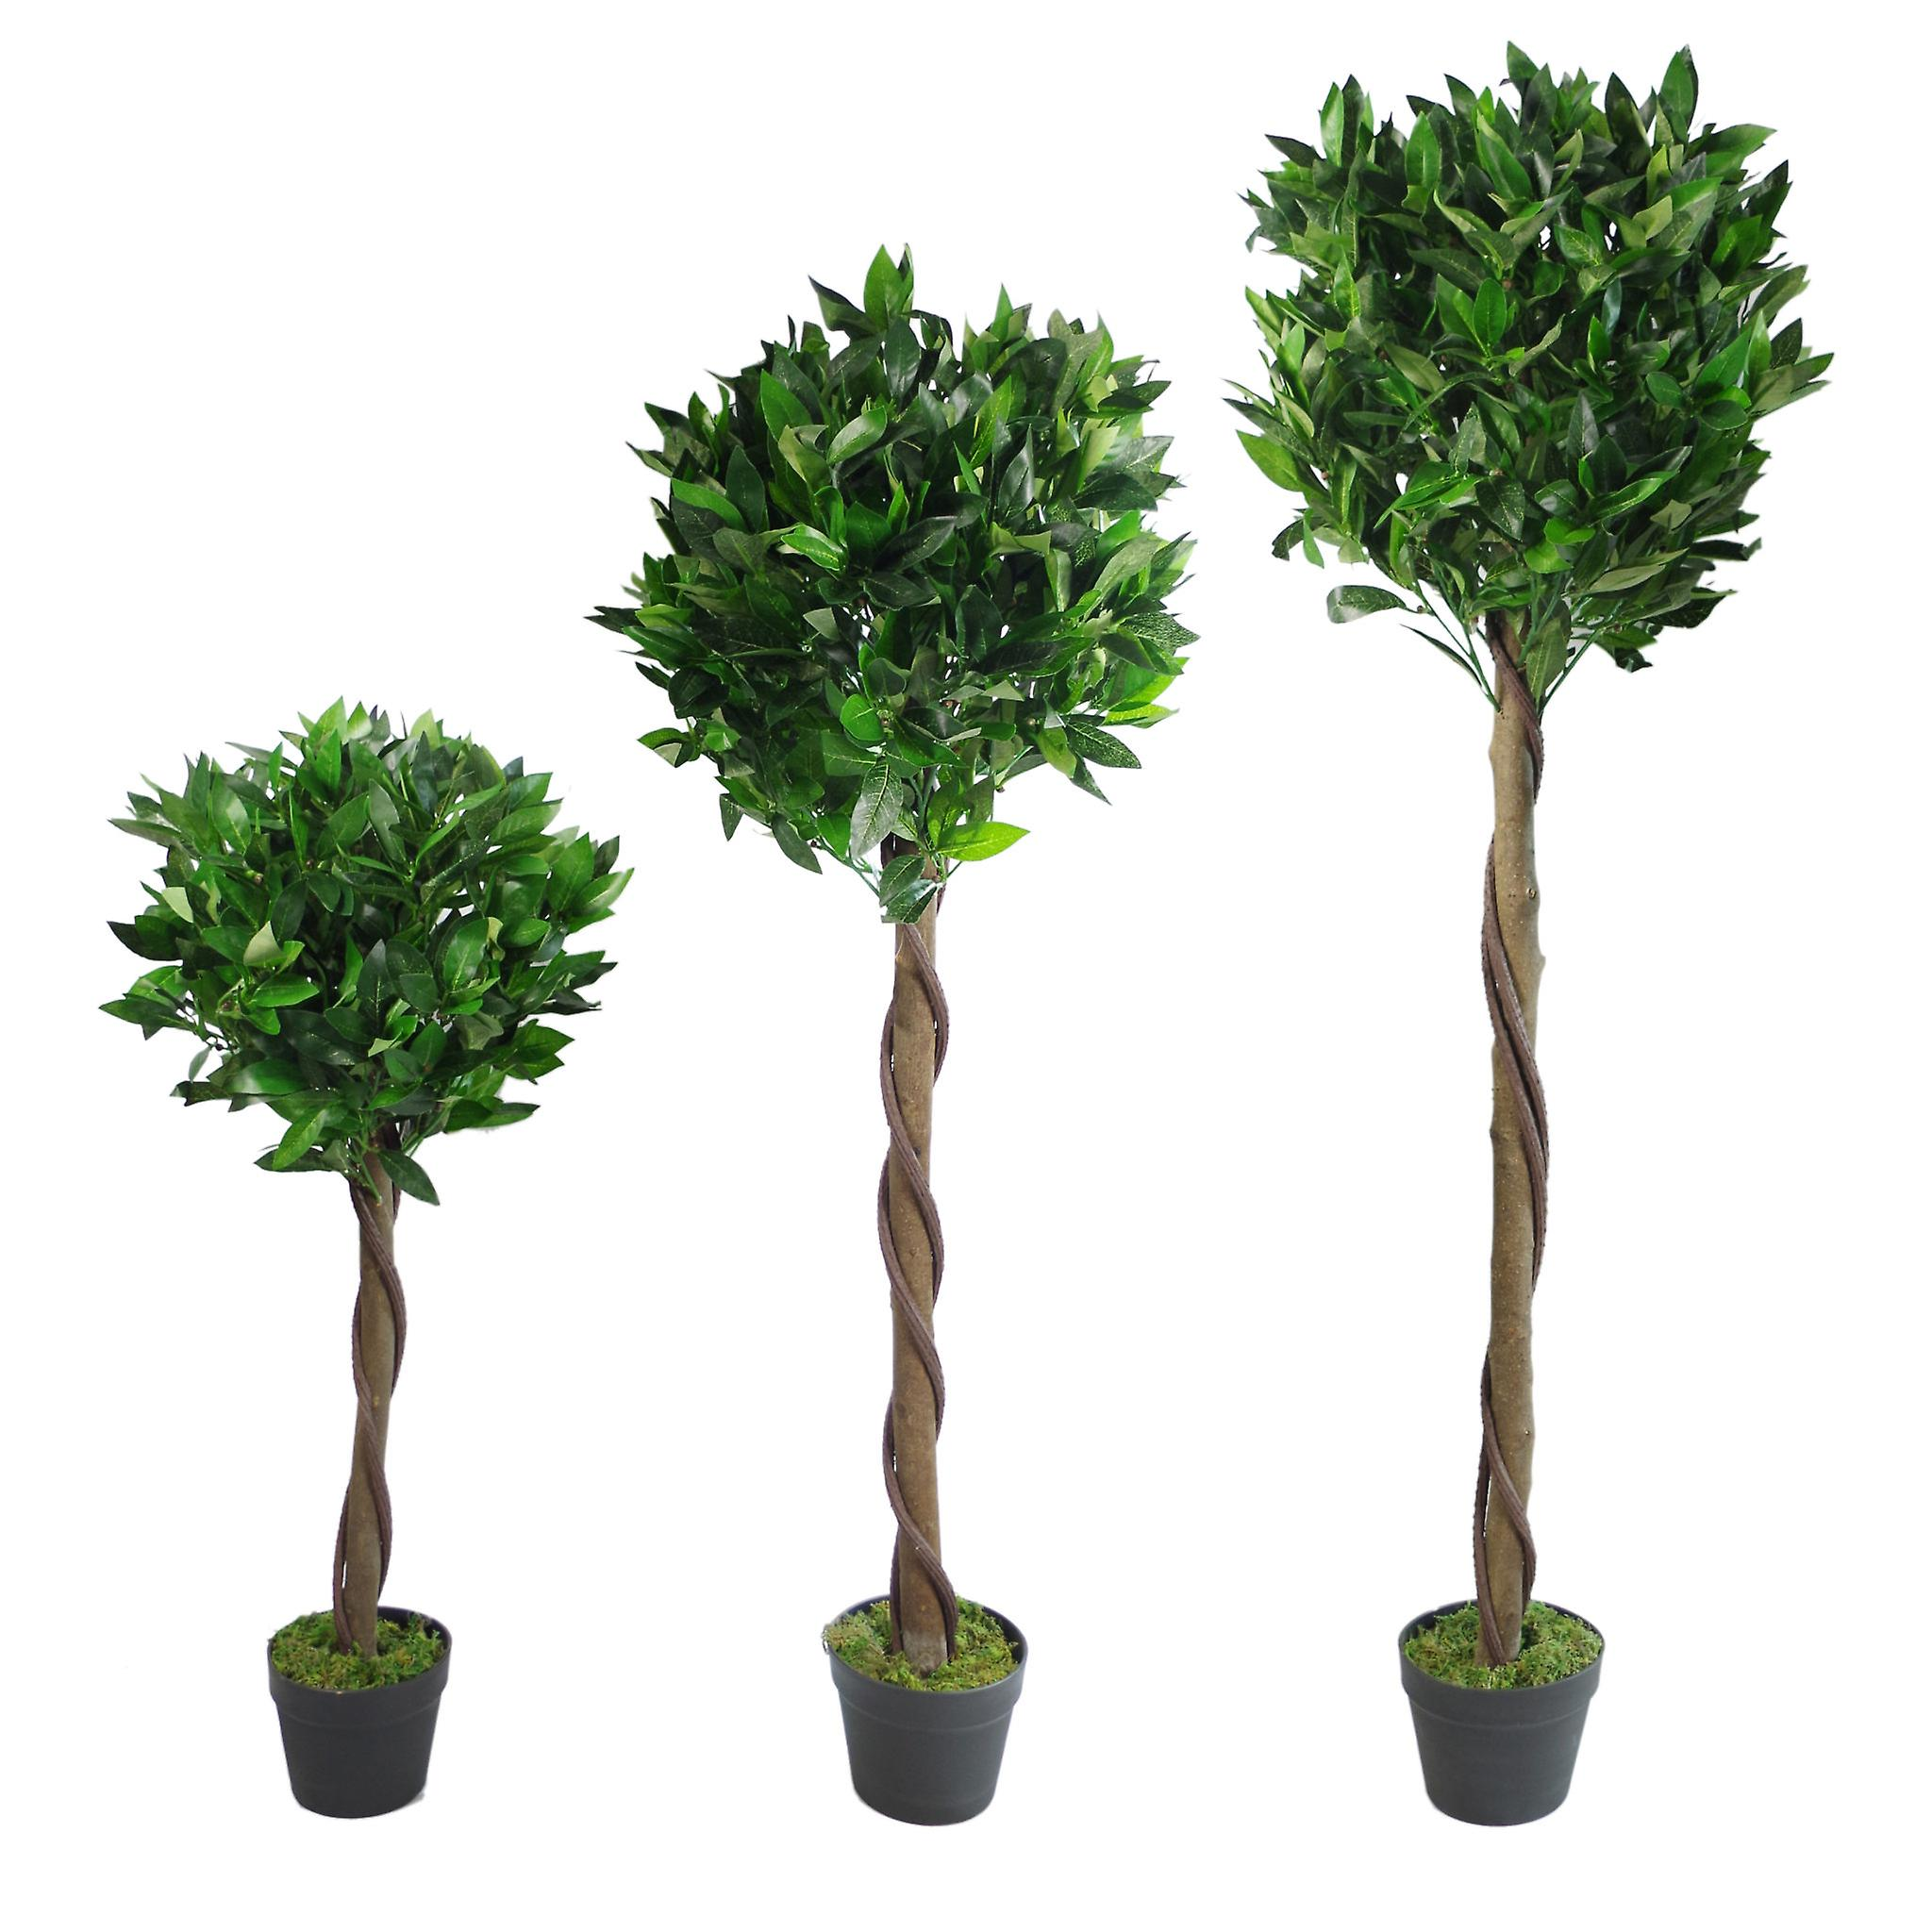 150cm (5ft) Twist Natural Trunk Artificial Topiary Bay Laurel Ball Tree